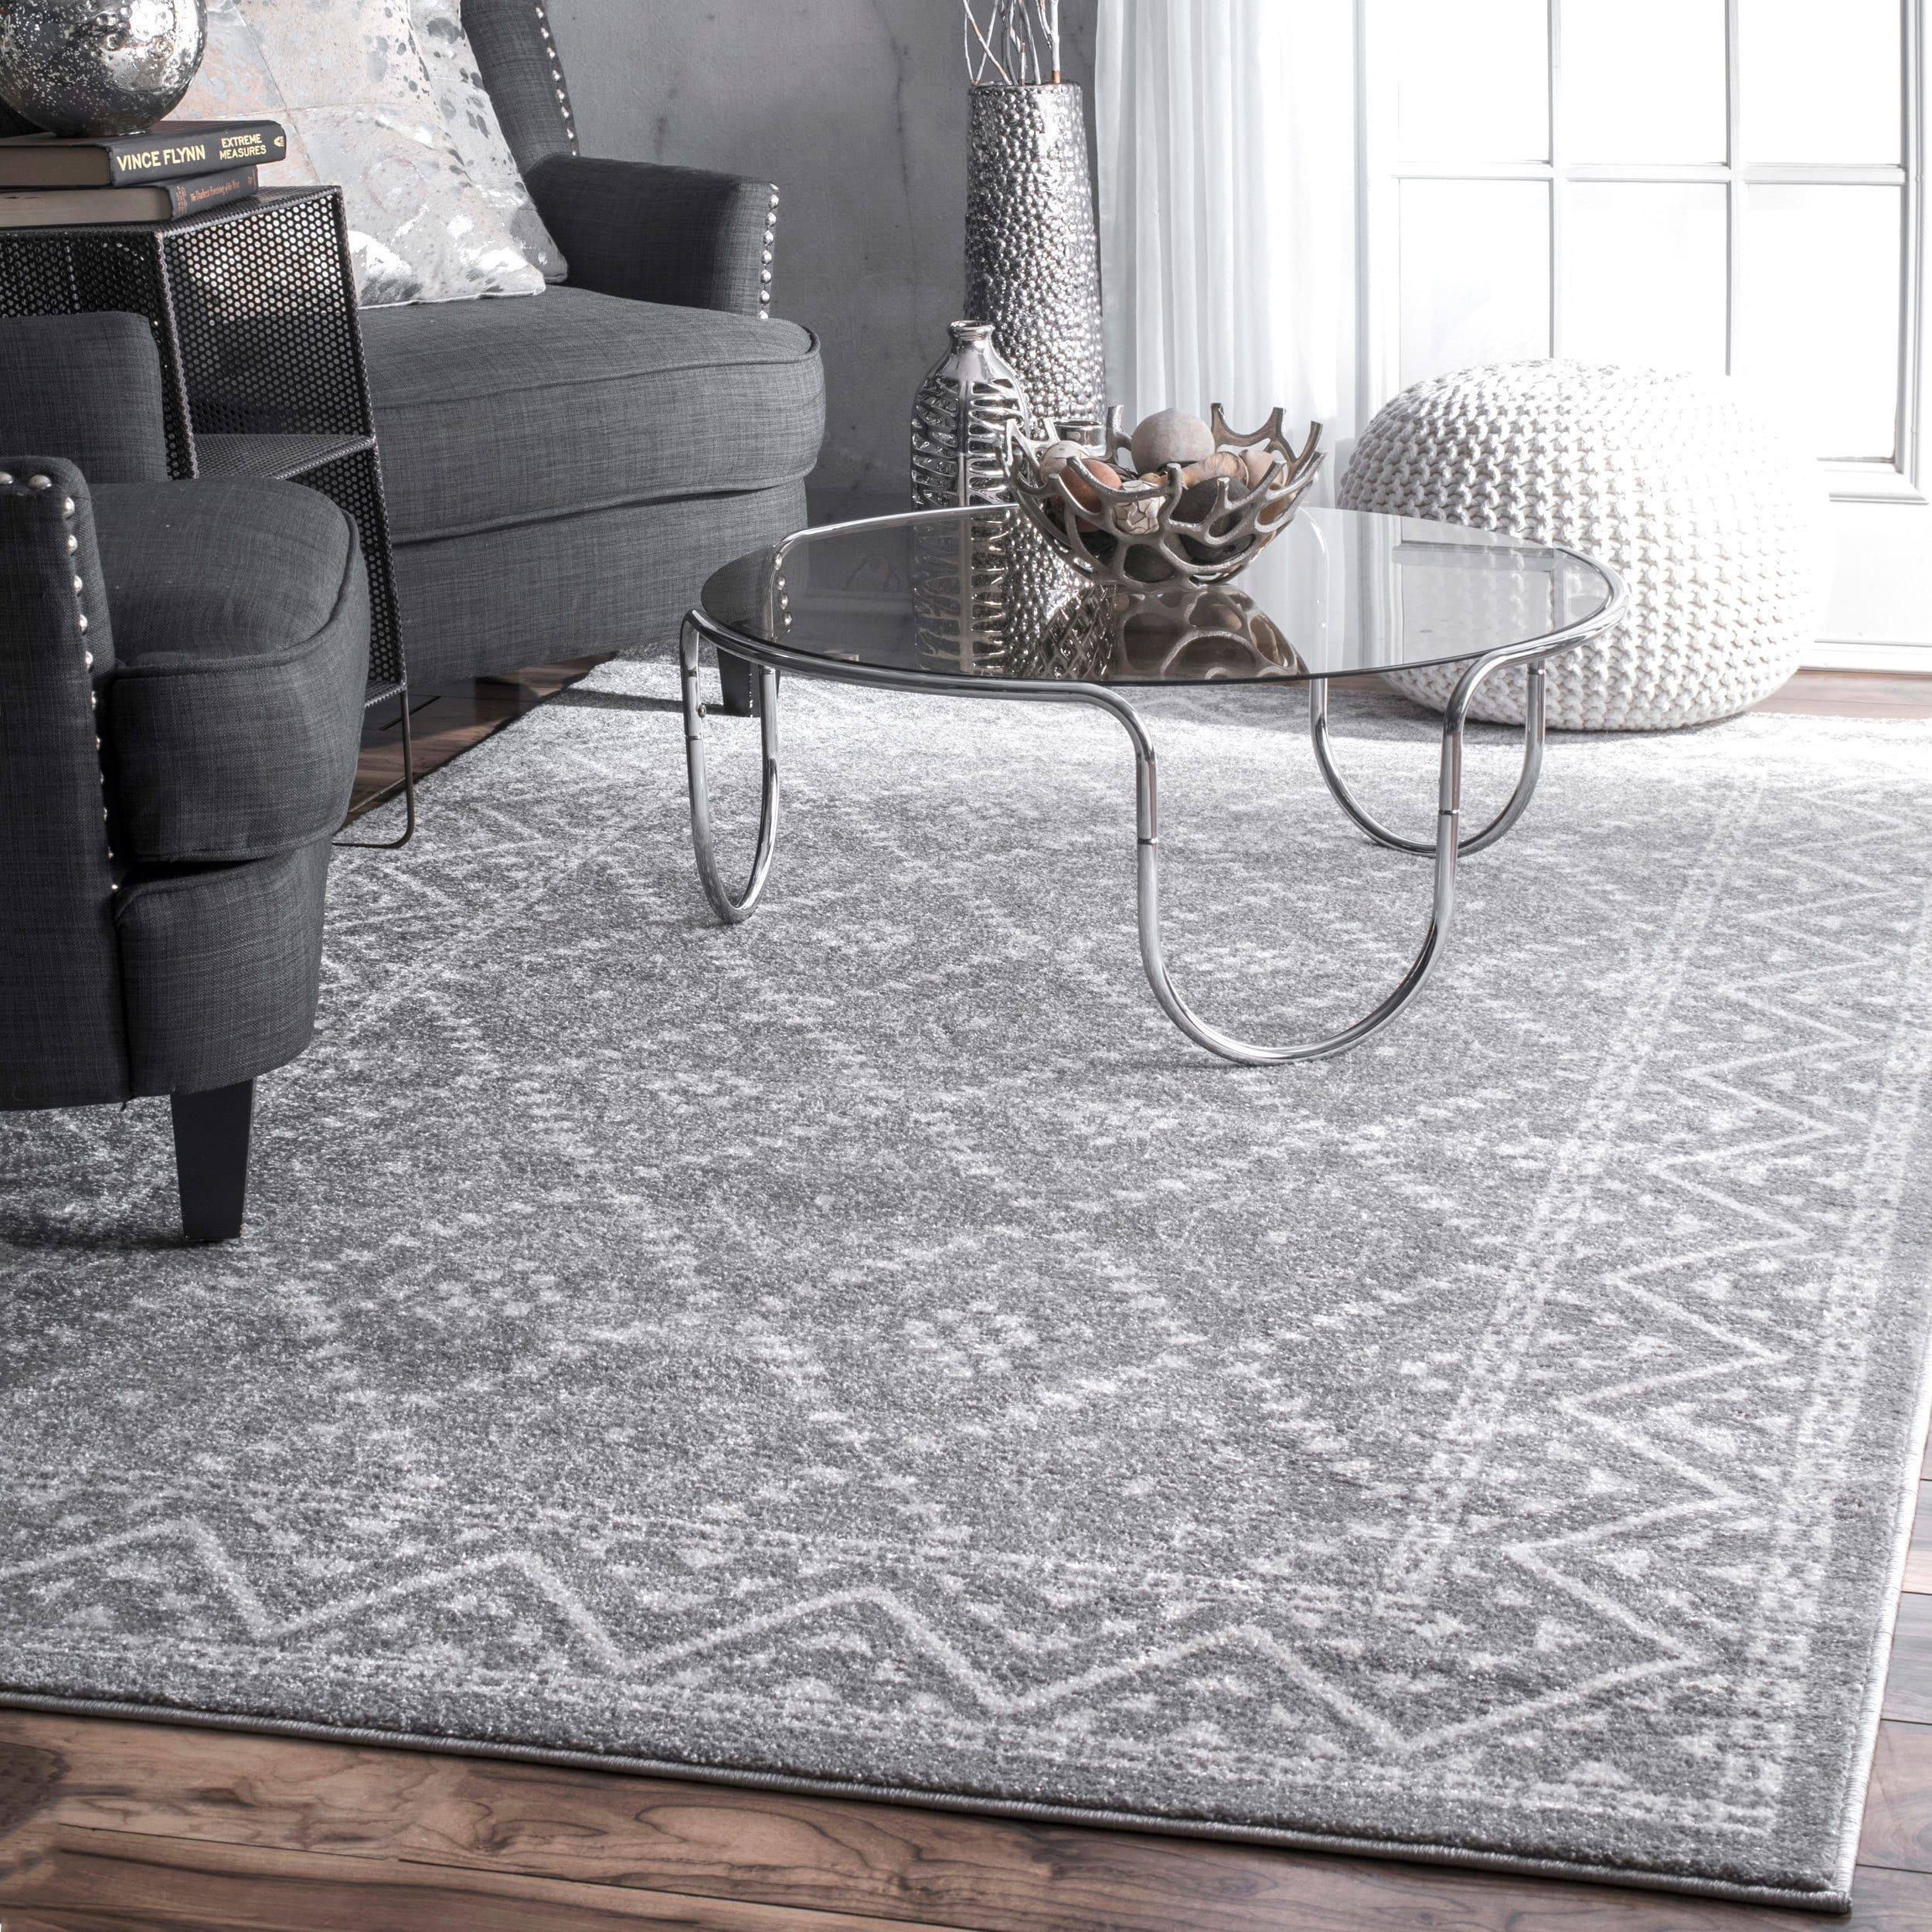 Strick Bolton Zetterlund Tribal Diamond Area Rug Rugs Rugs In Living Room Area Rugs